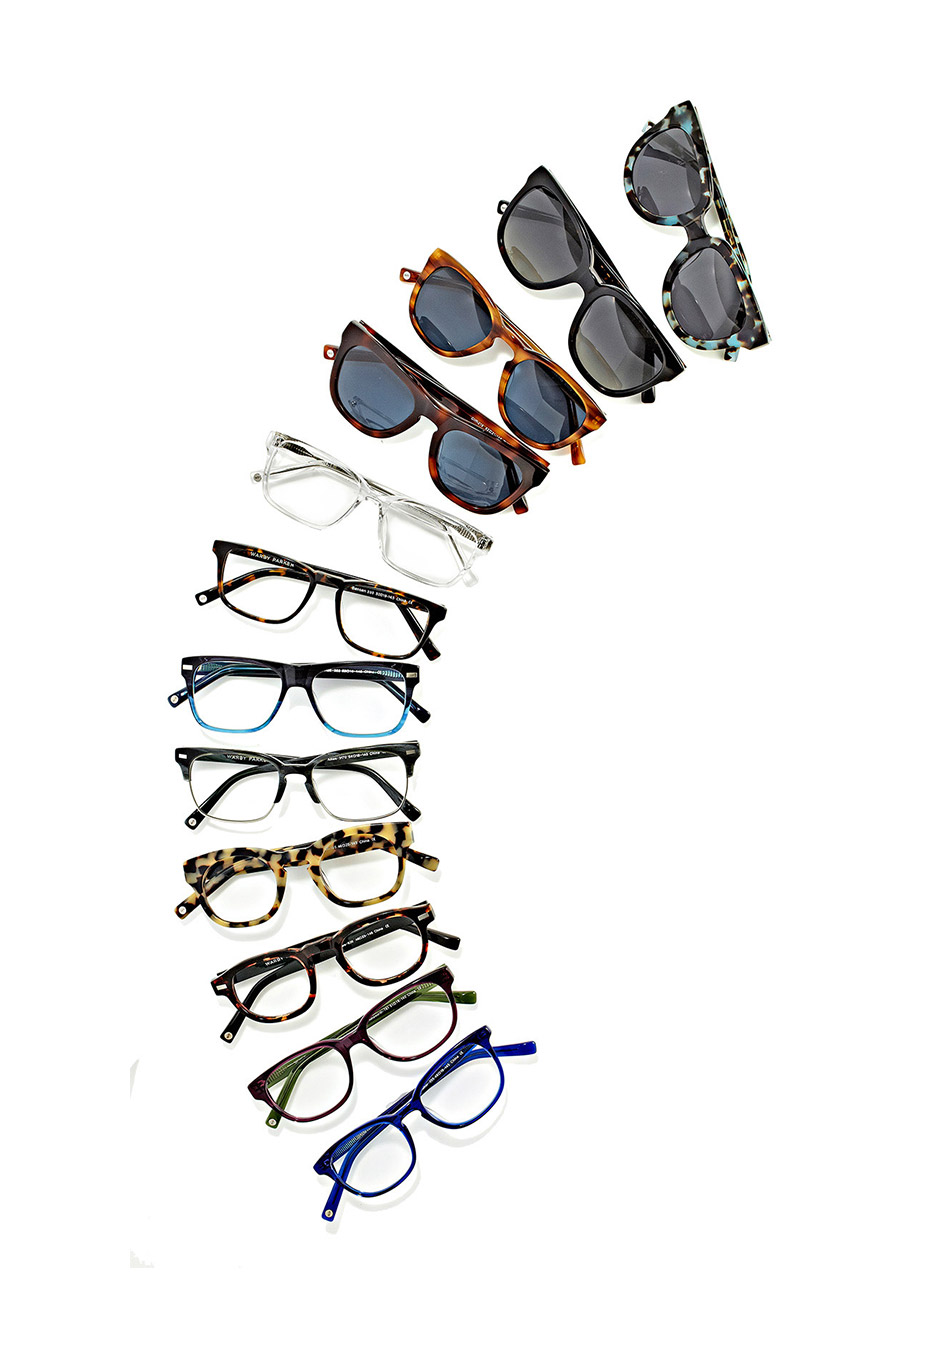 latest style in eyeglasses i75g  Warby Parker Eyeglasses and Sunglasses